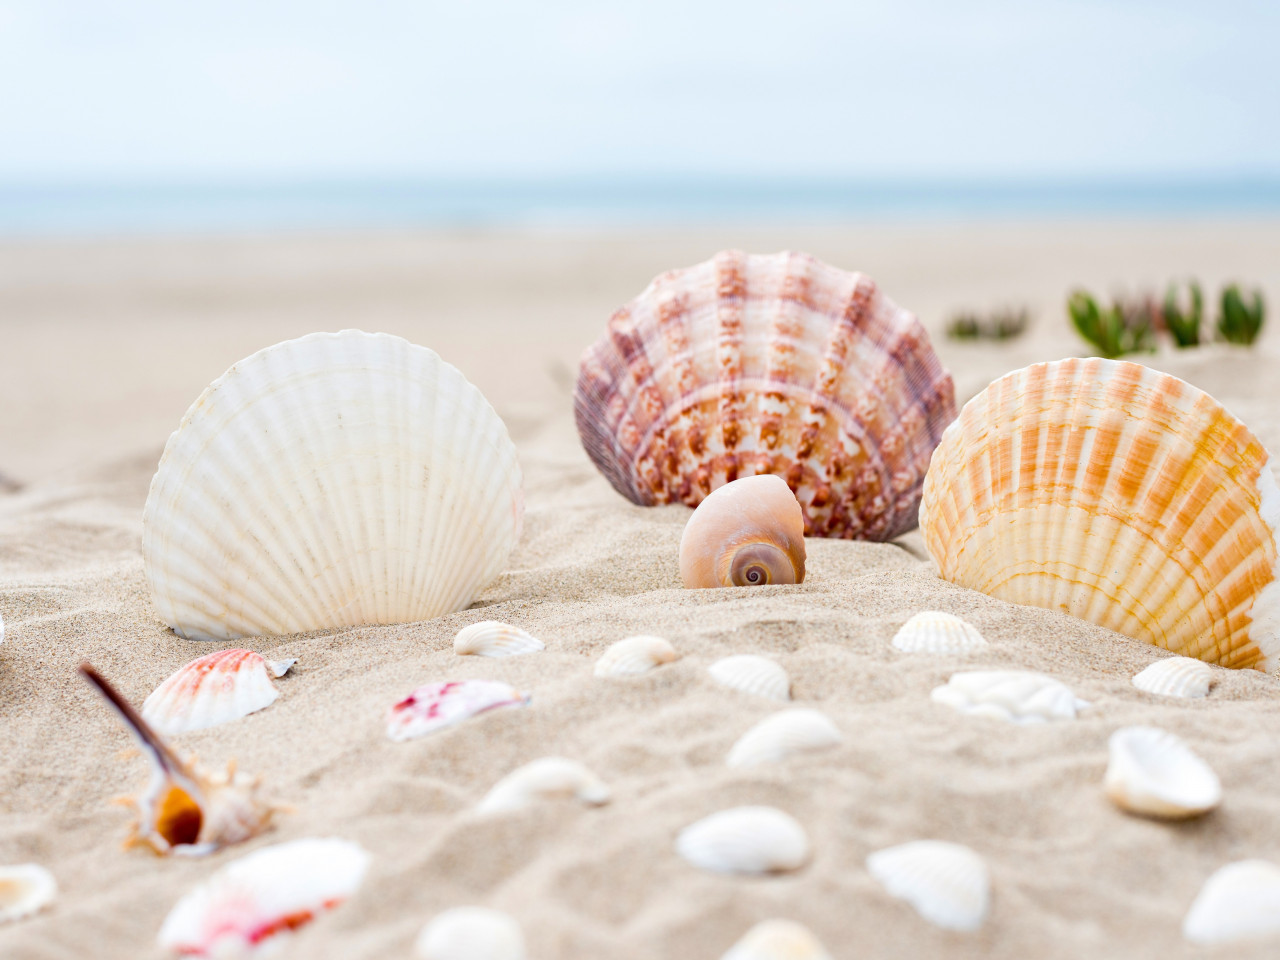 Shells on the ocean beach wallpaper 1280x960